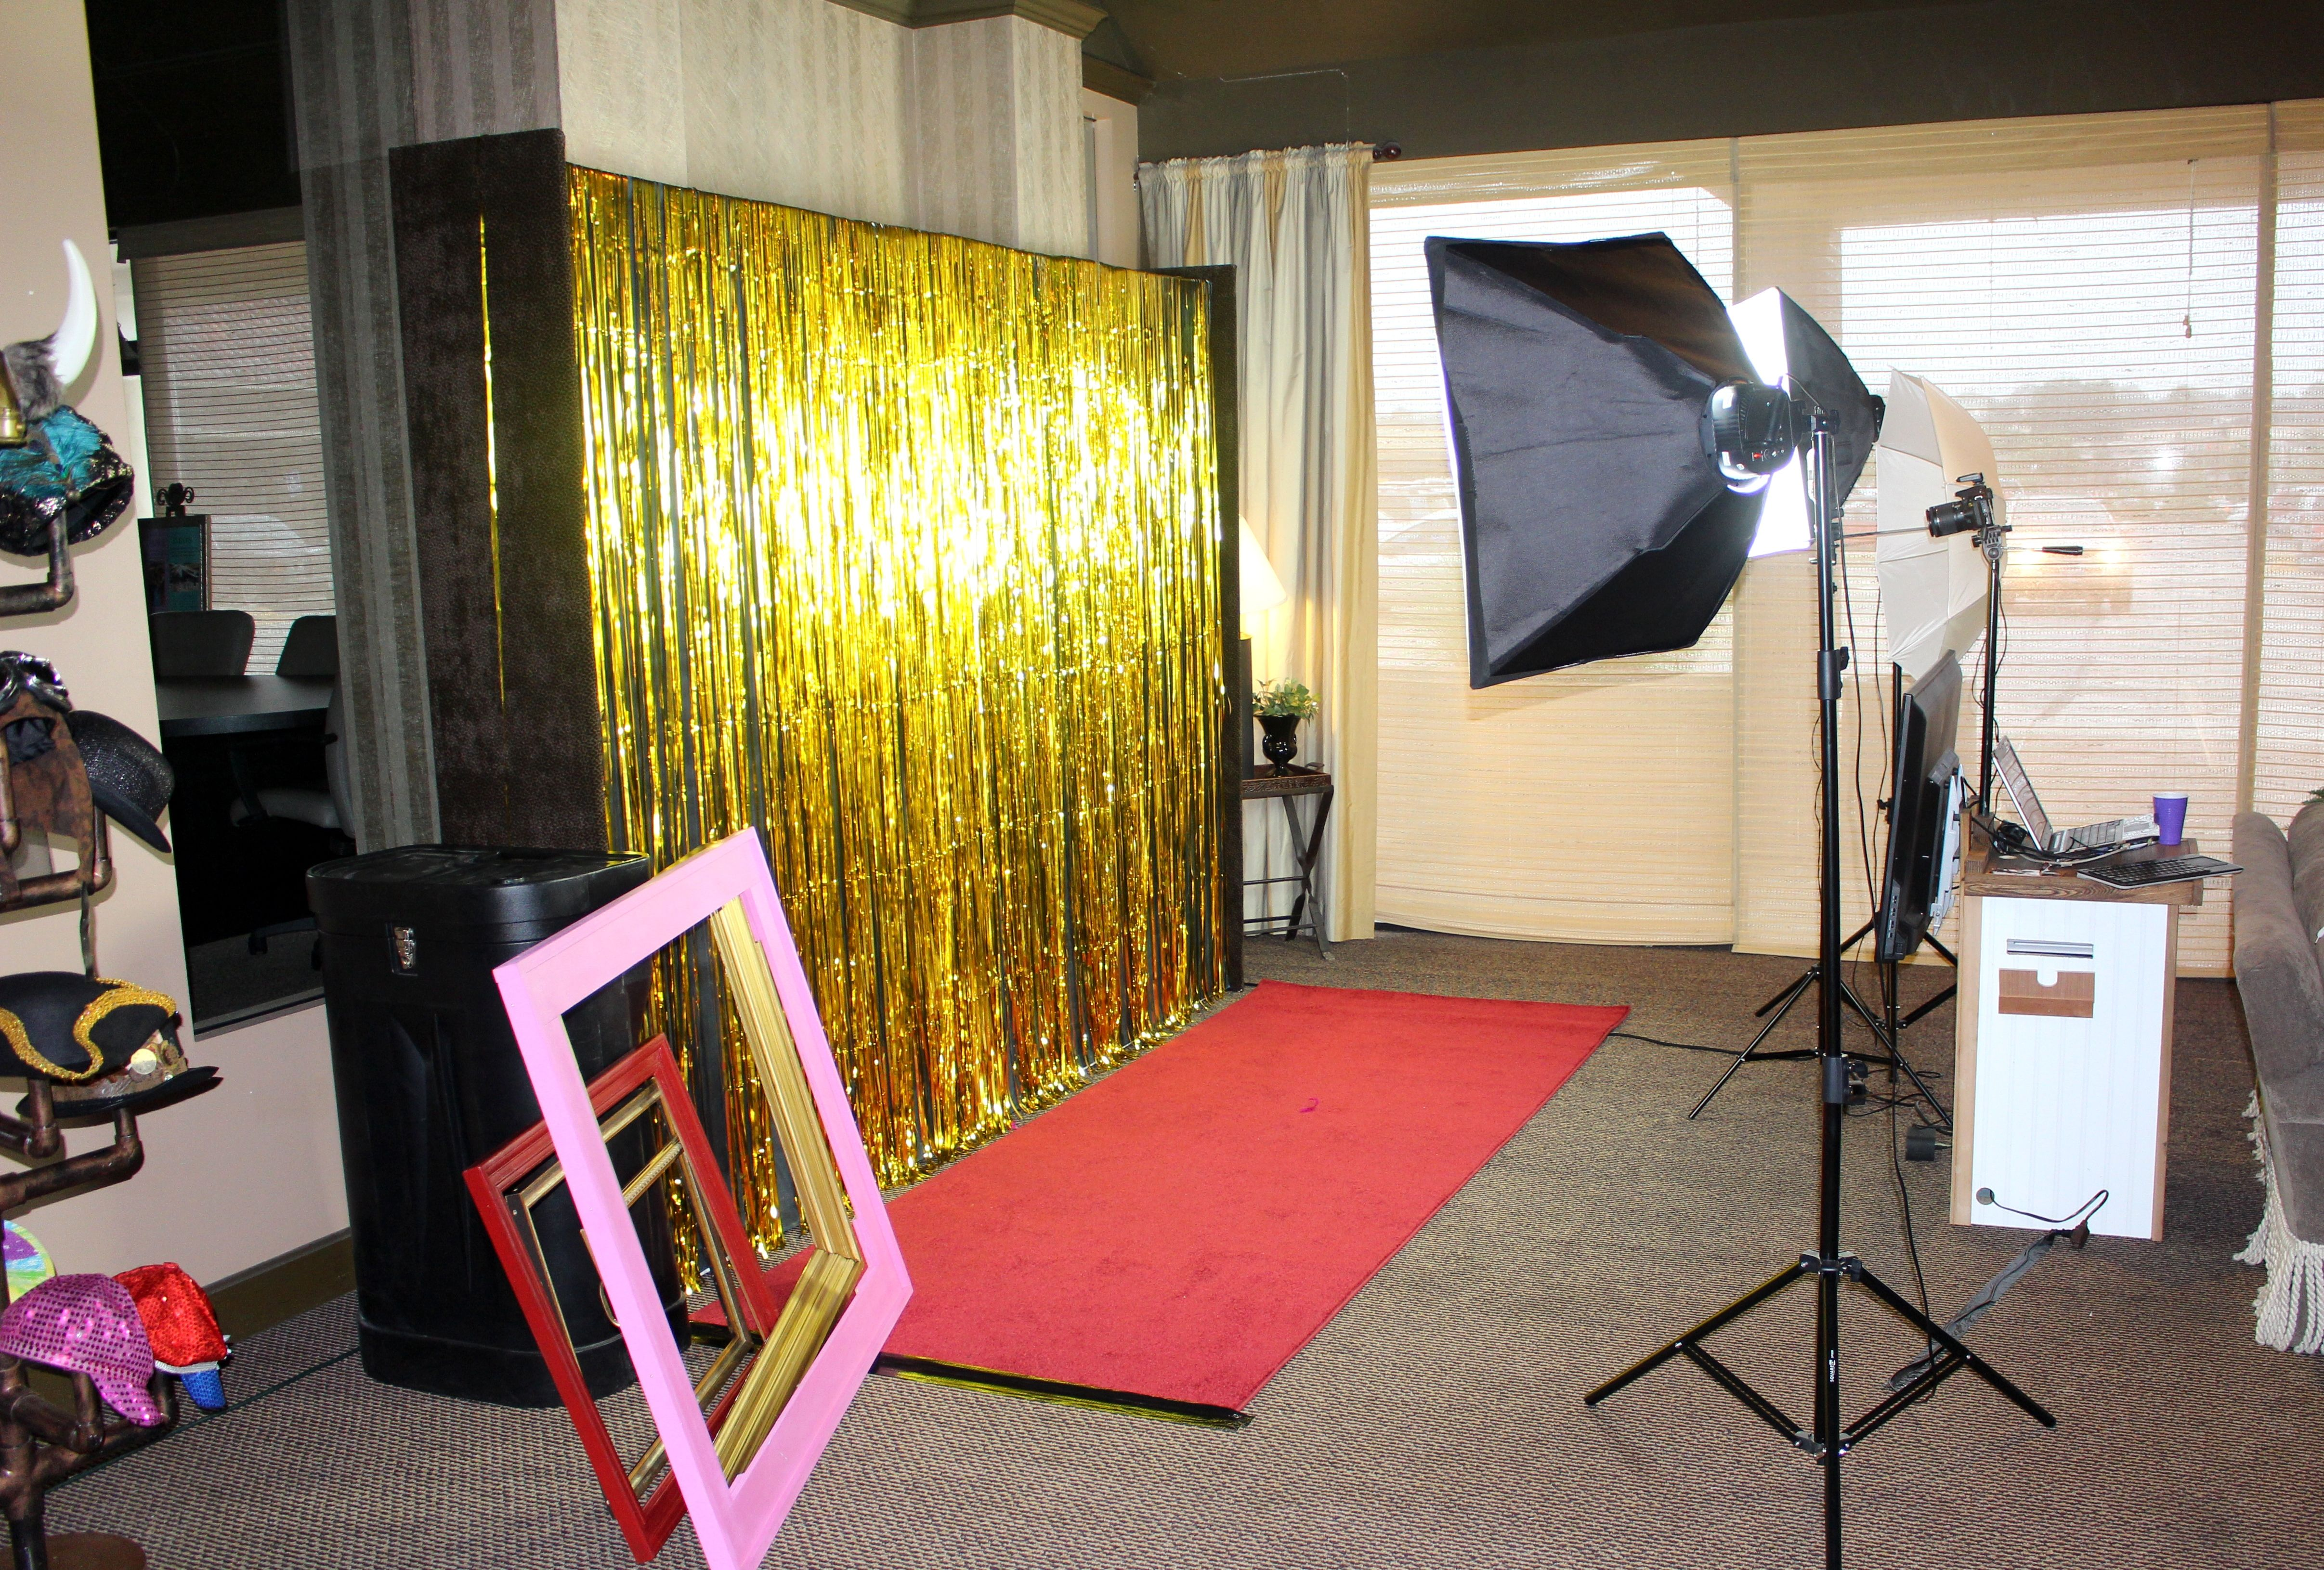 Our Red Carpet Photo Booth At The Teah Ballroom Dance Studio